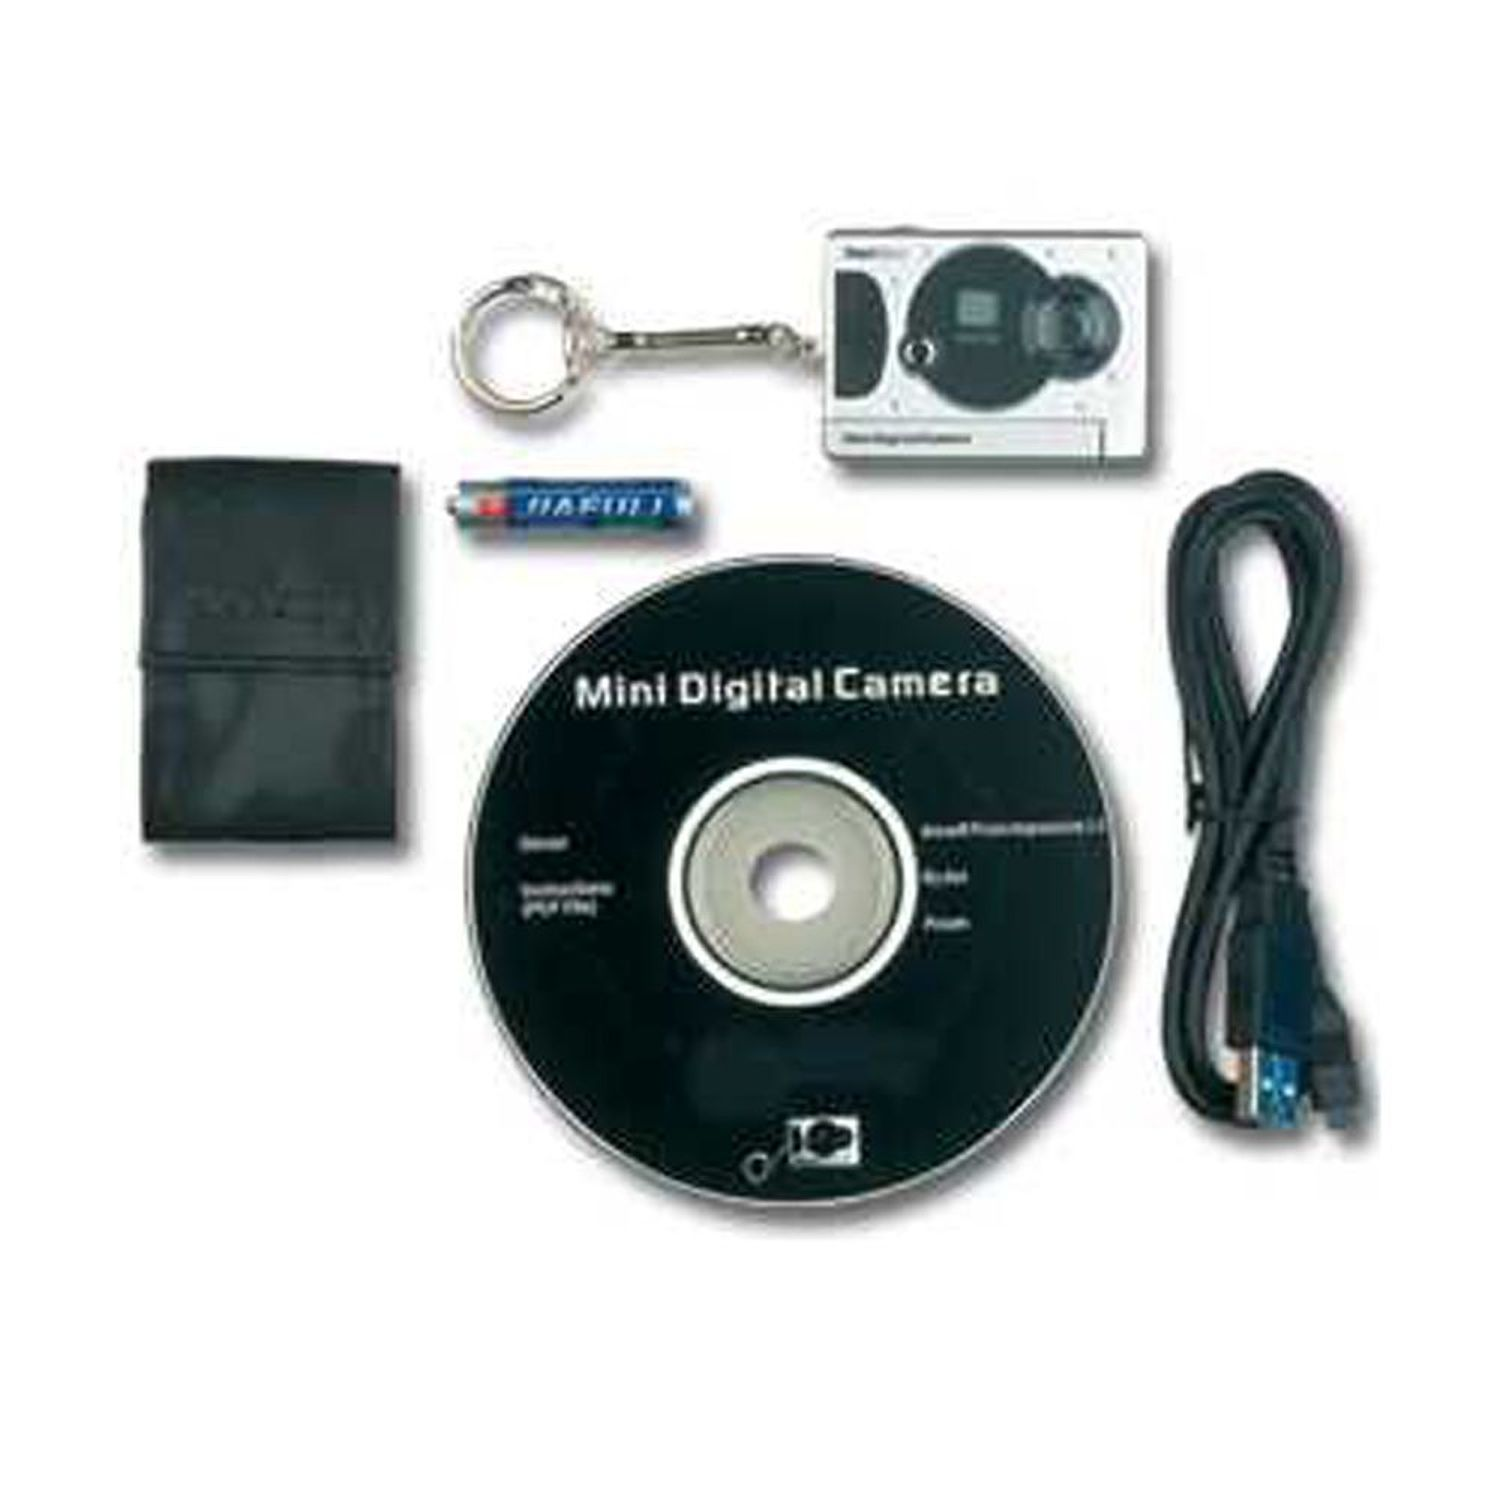 Smallest Spy Digital Camera with Web Cam - Video Cam Build-In